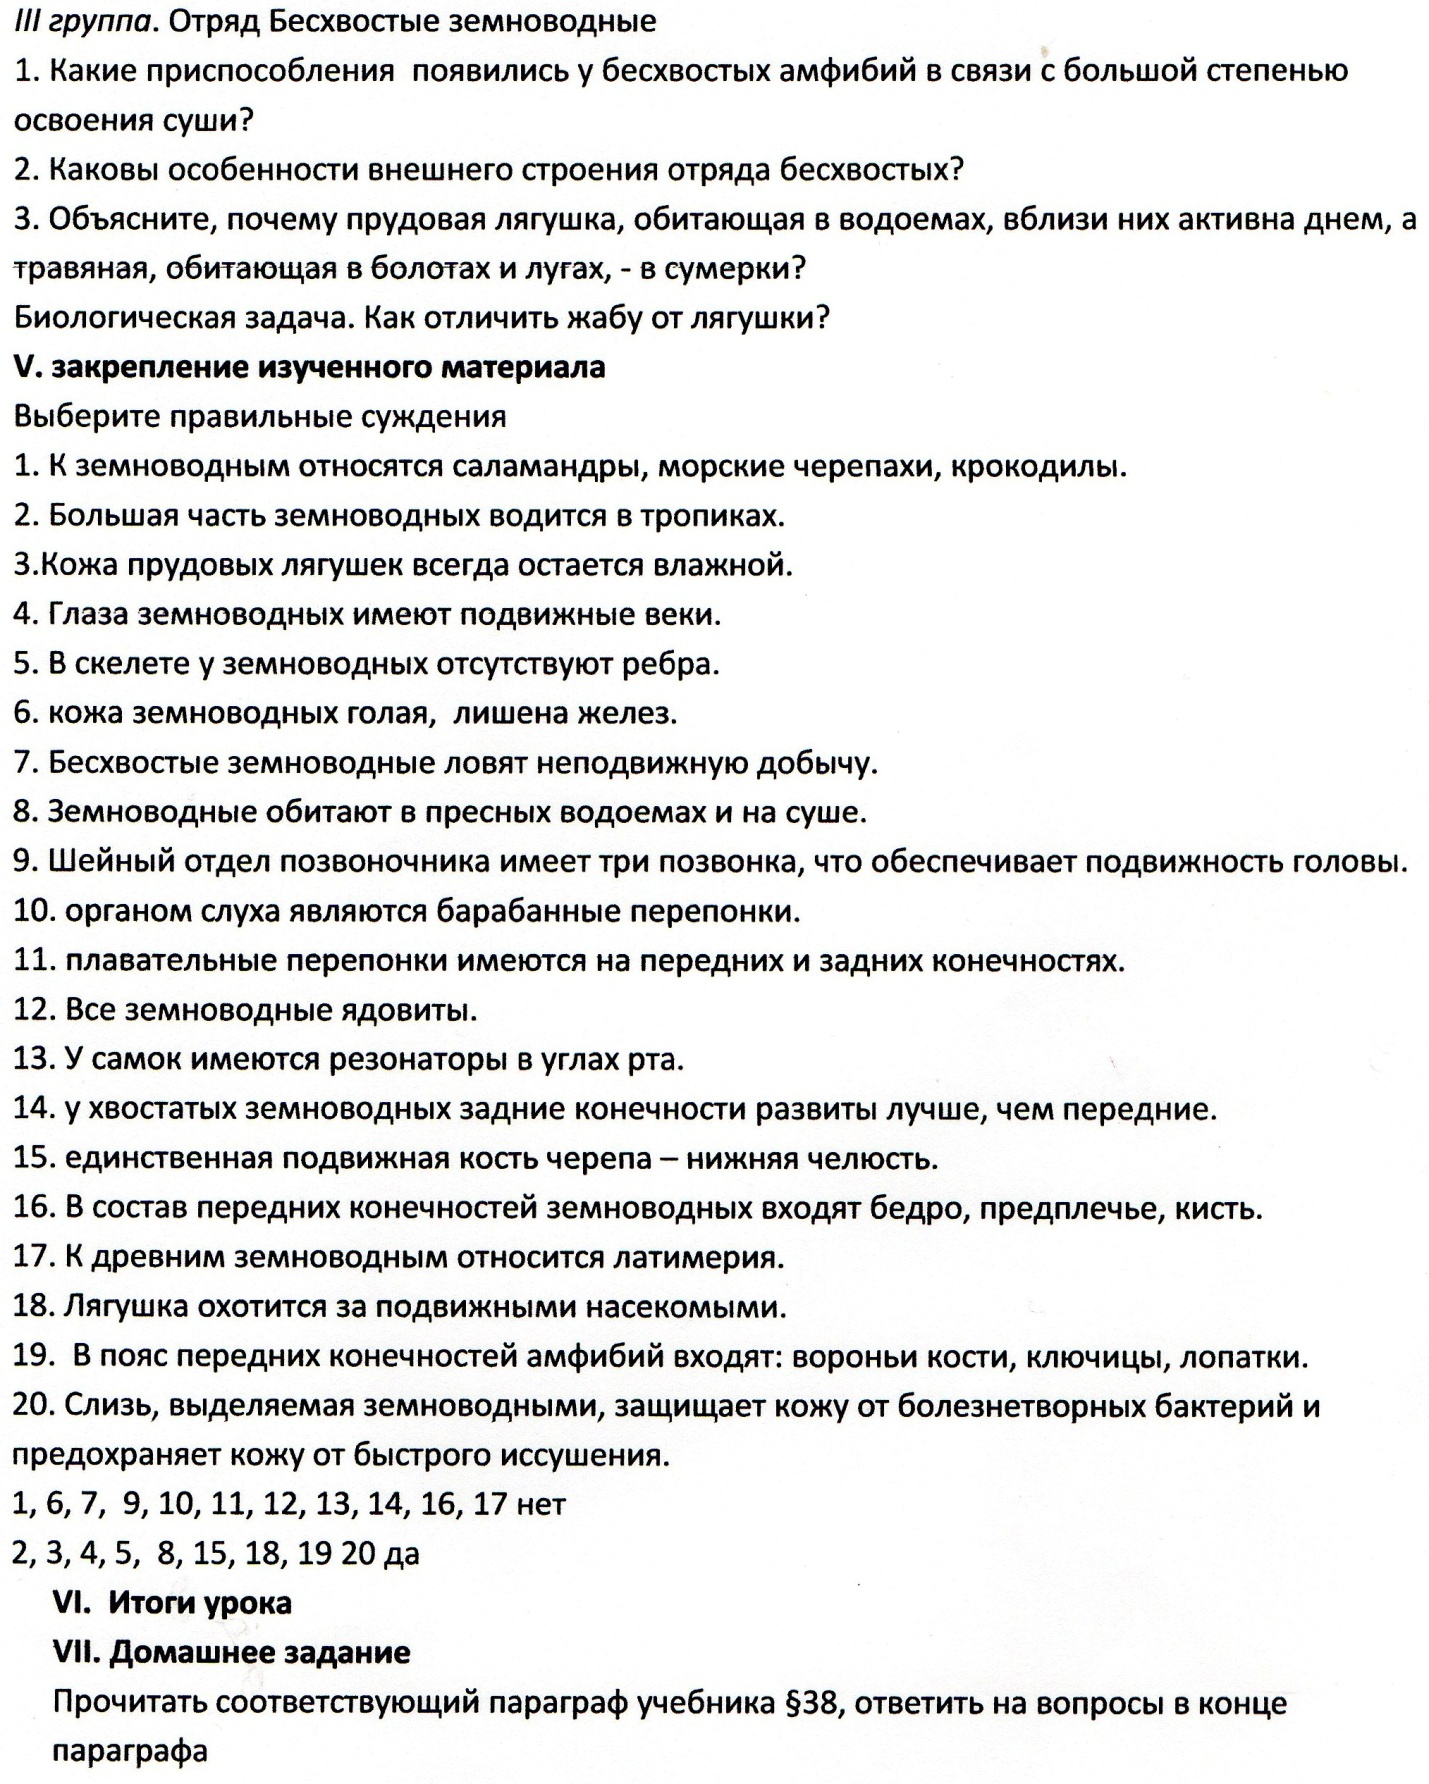 C:\Users\Лена\Pictures\img041.jpg